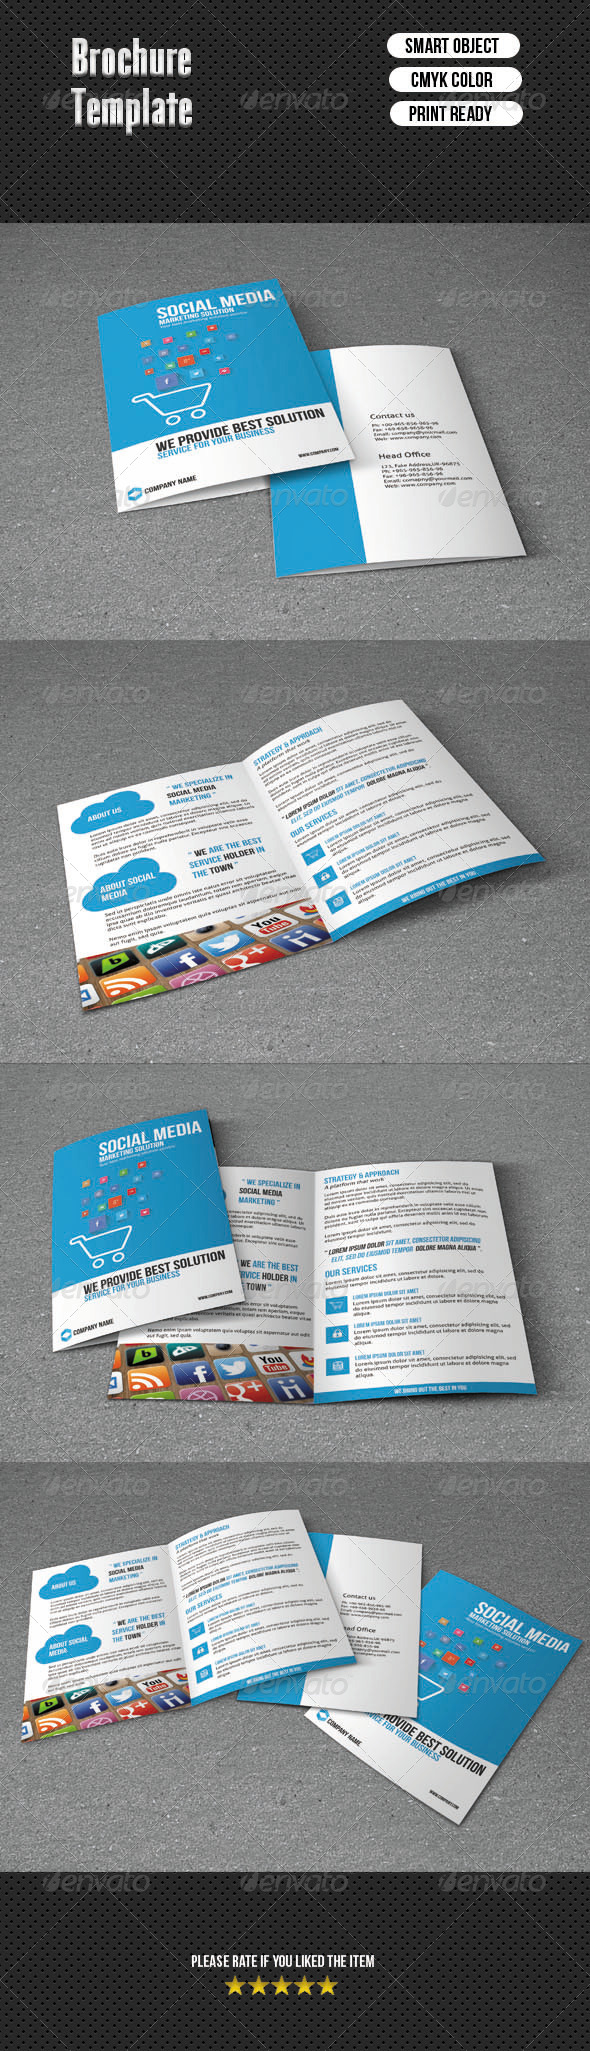 Social Media Marketing Brochure - Corporate Brochures